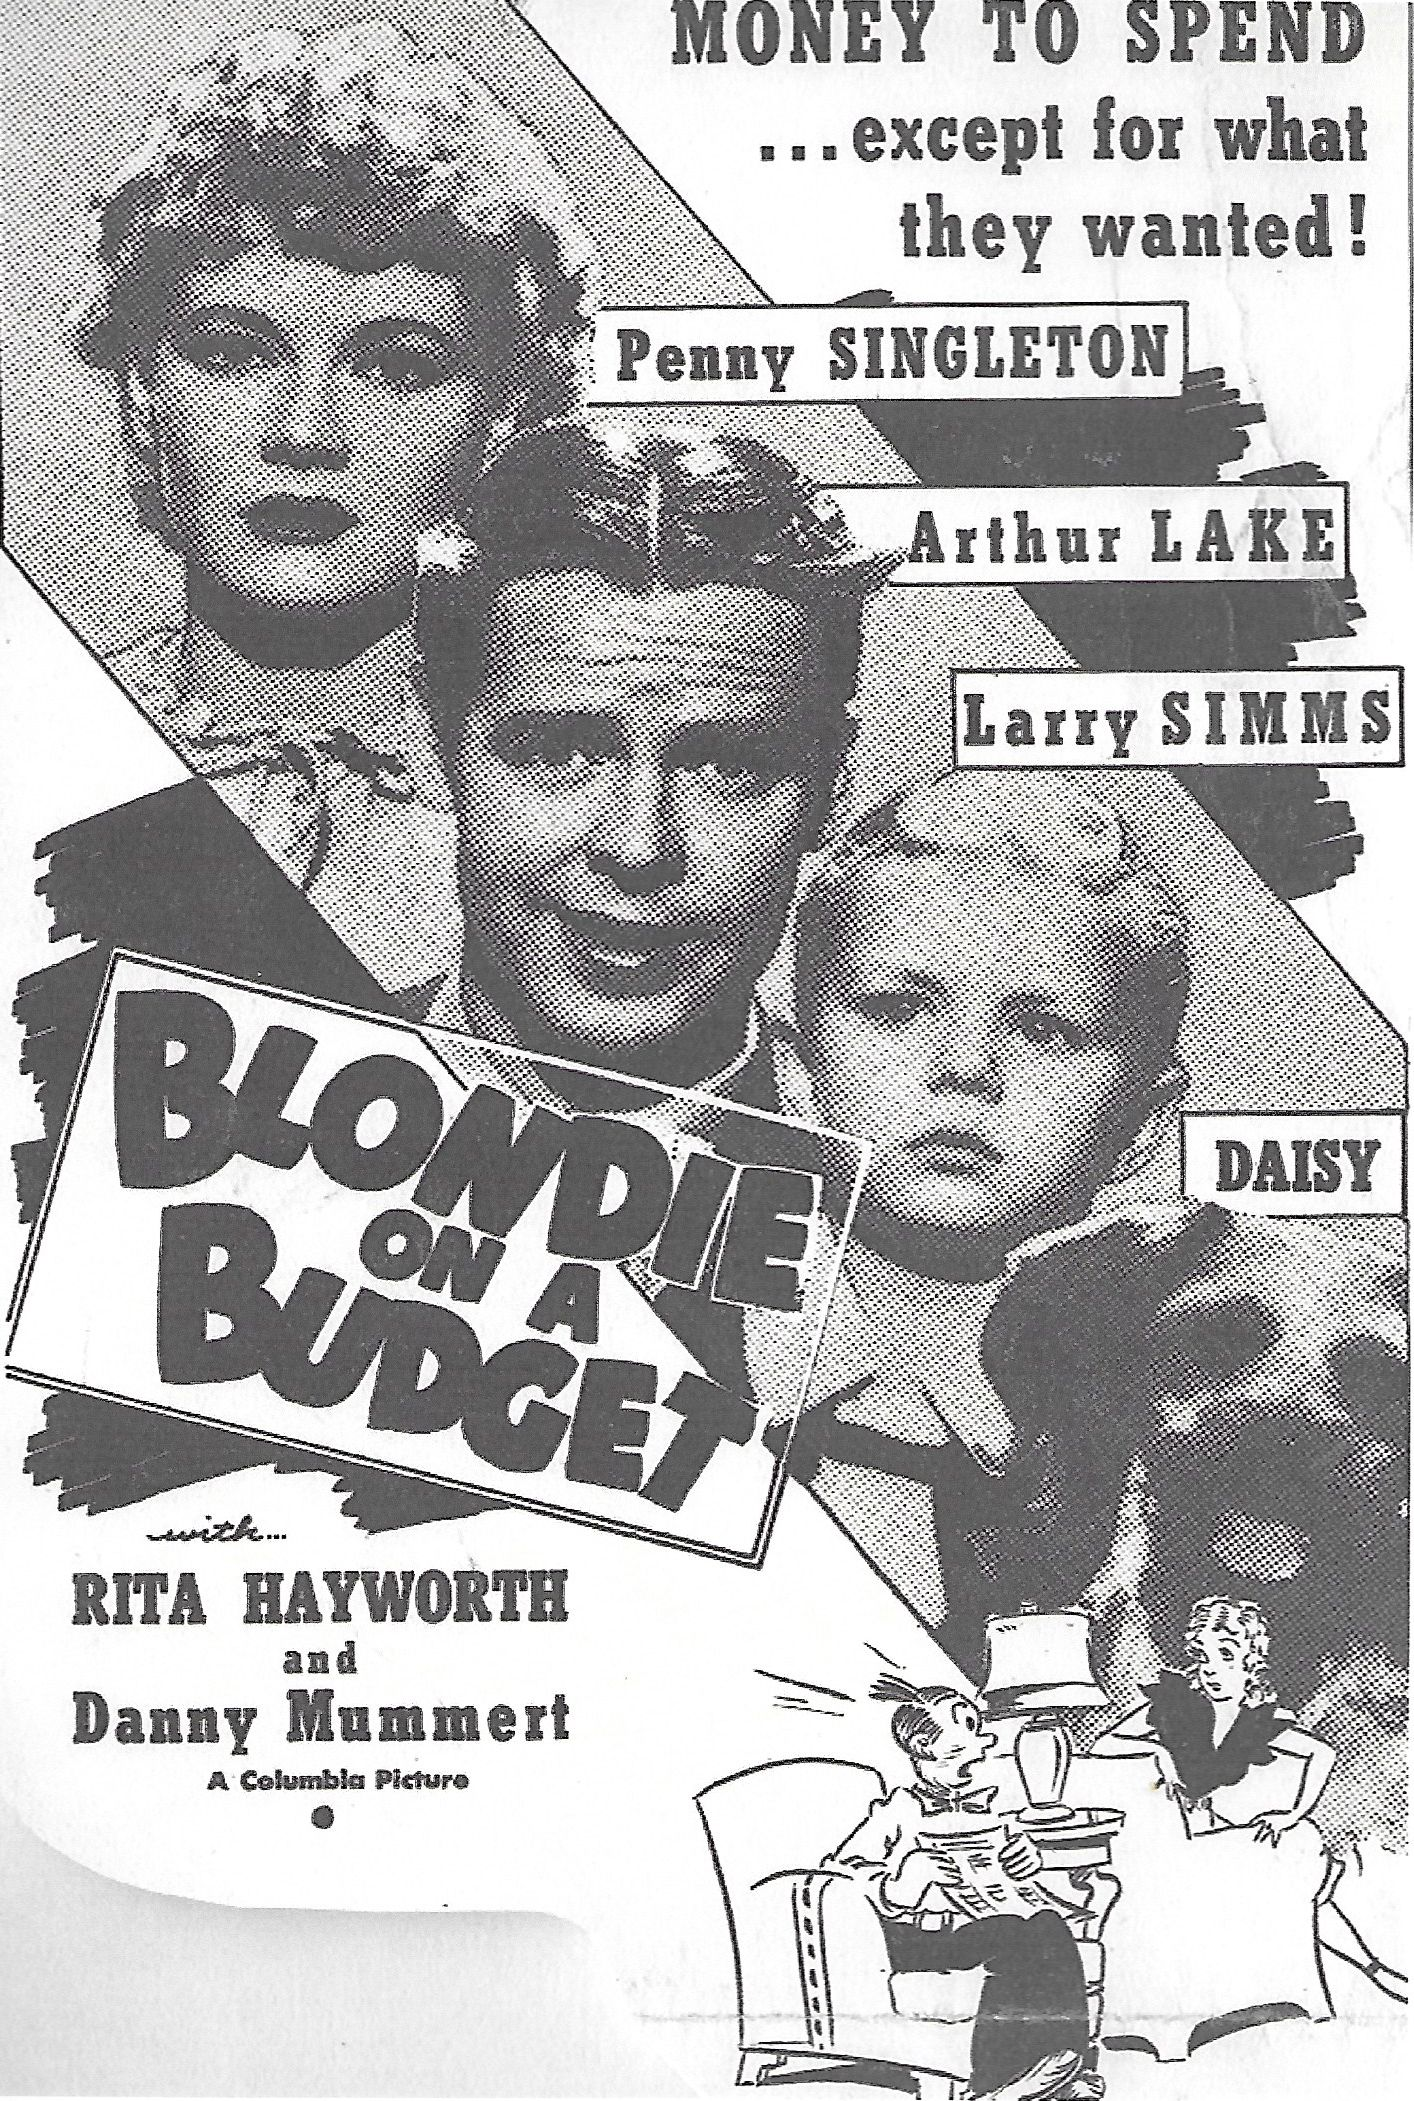 Arthur Lake, Larry Simms, Penny Singleton, and Daisy in Blondie on a Budget (1940)